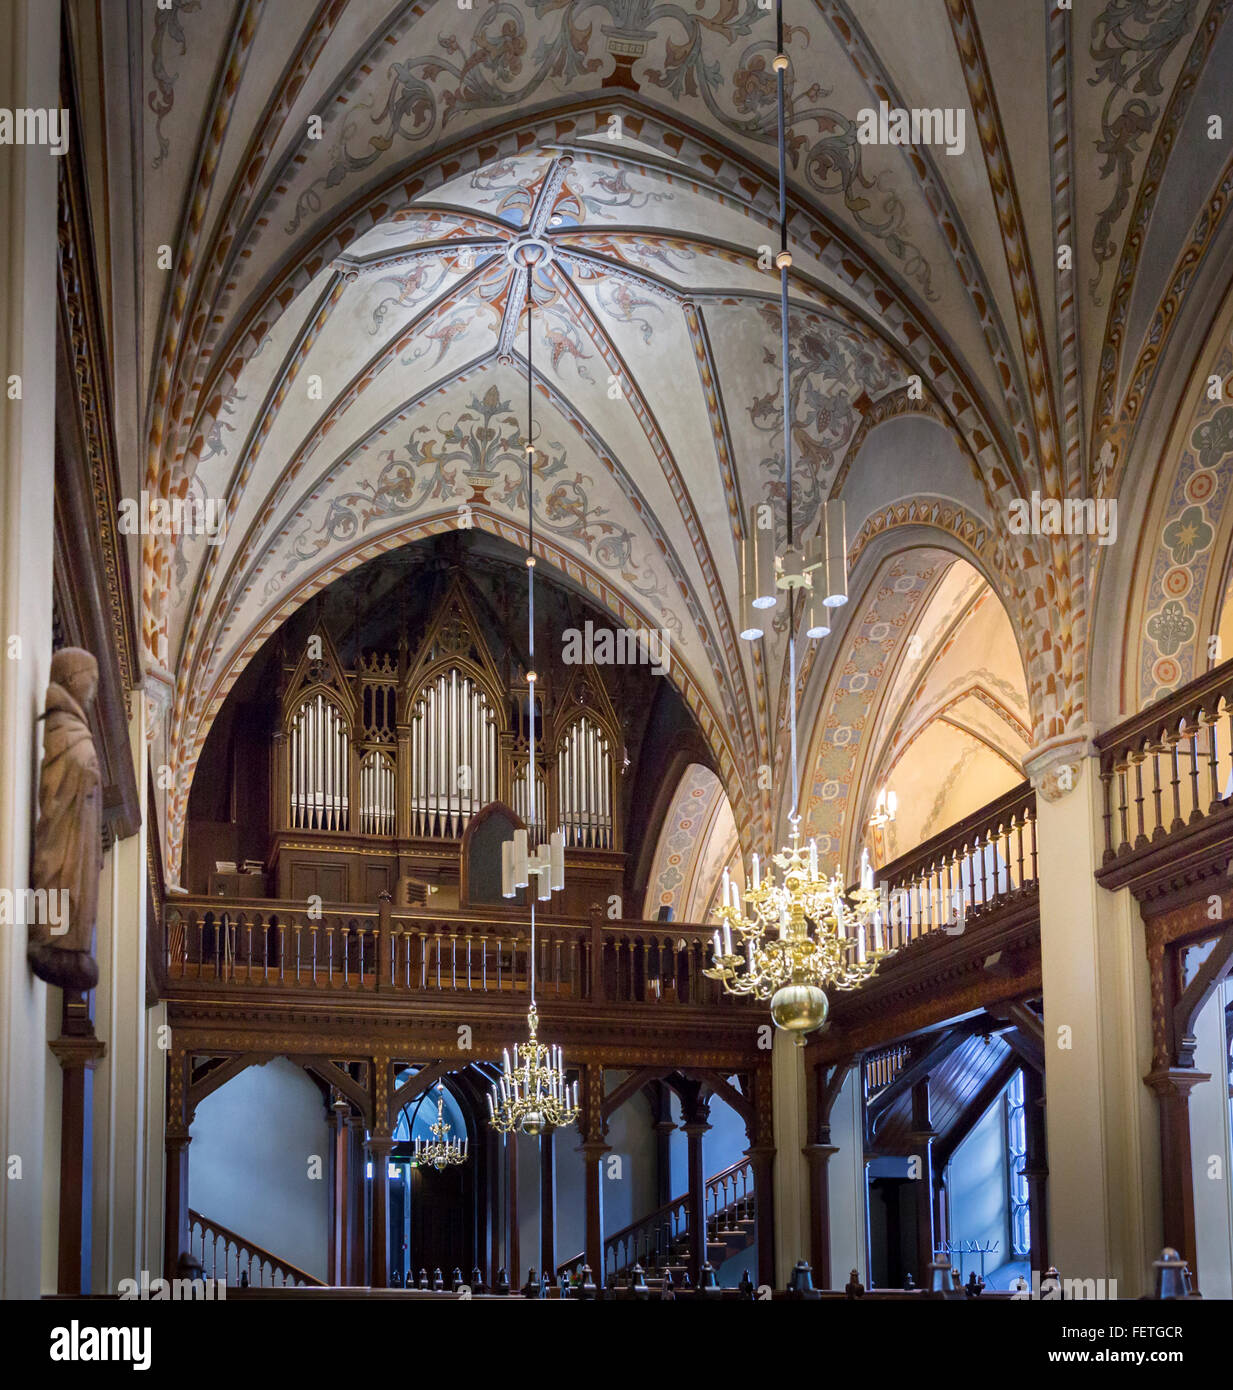 1893 pipe organ inside the Church of St. Lawrence in Vantaa, Finland - Stock Image